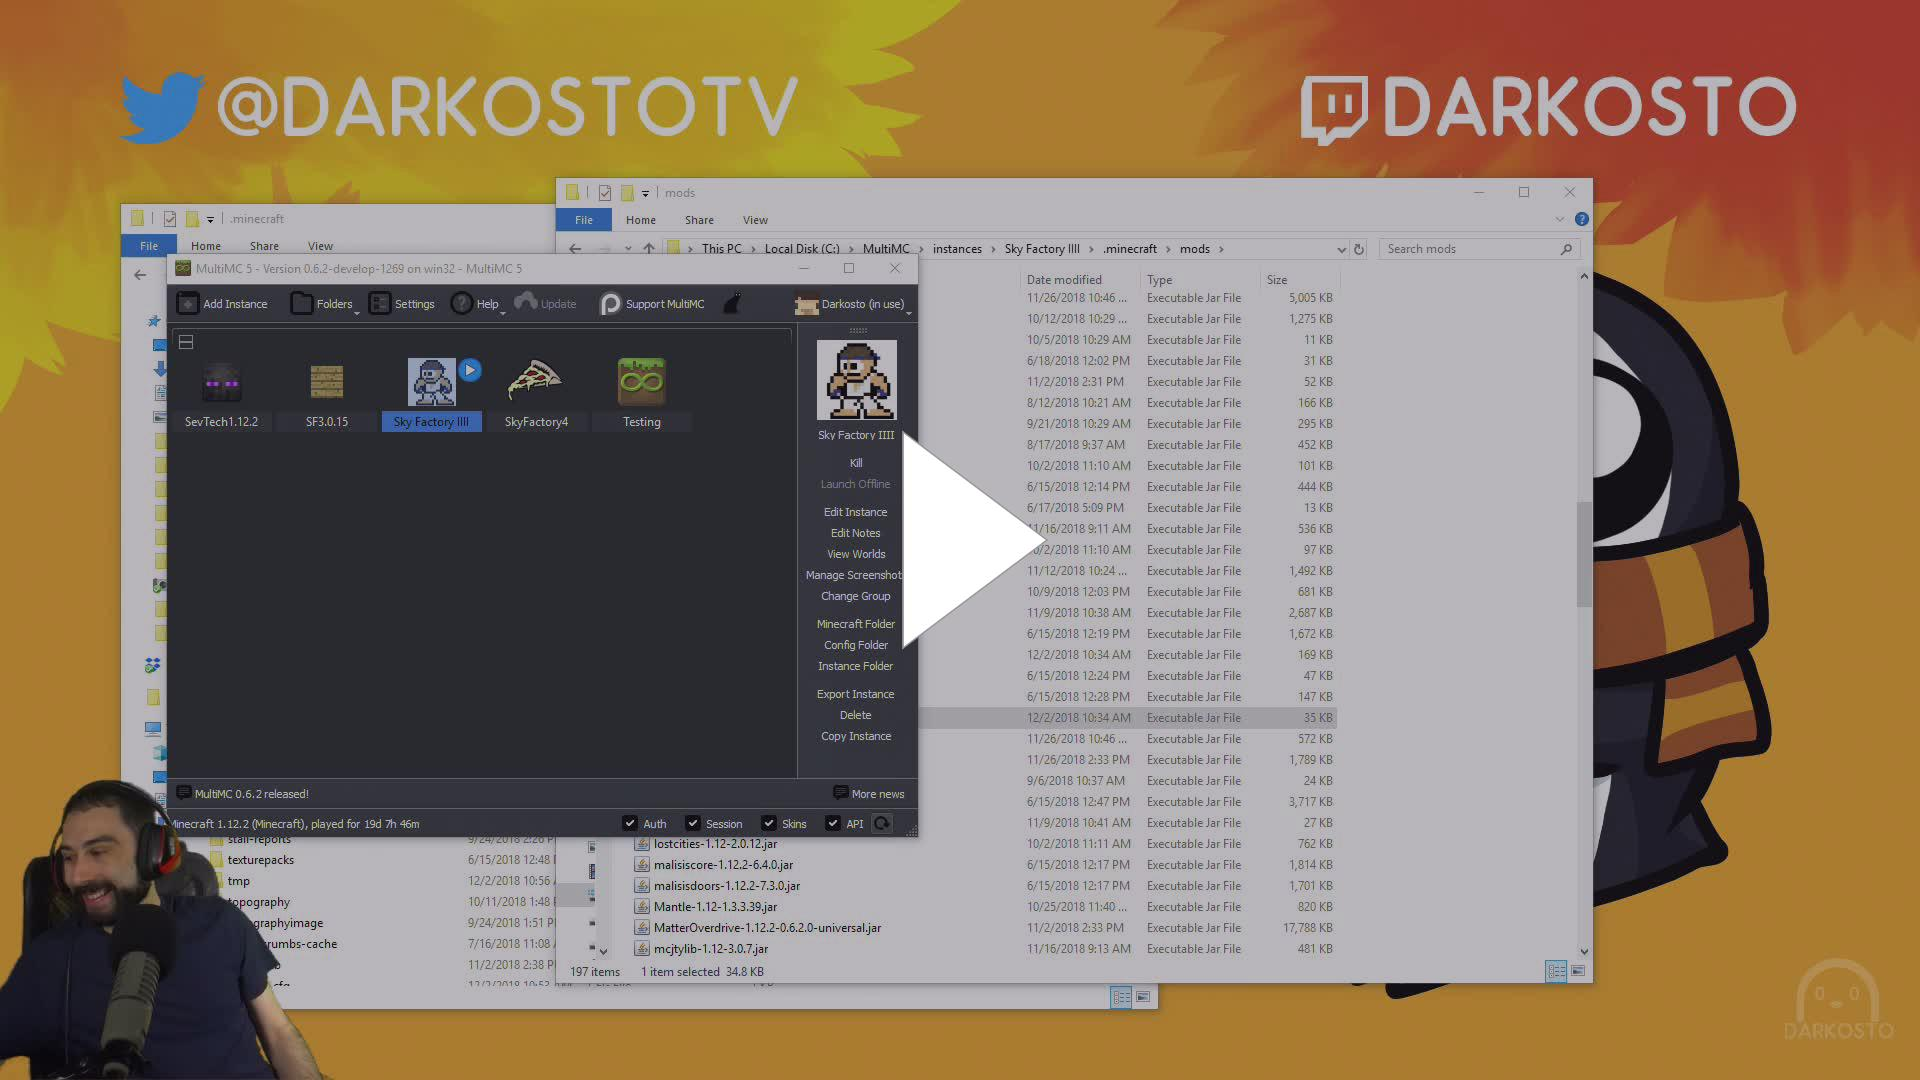 darkosto - The Making of SkyFactory 4 - Twitch